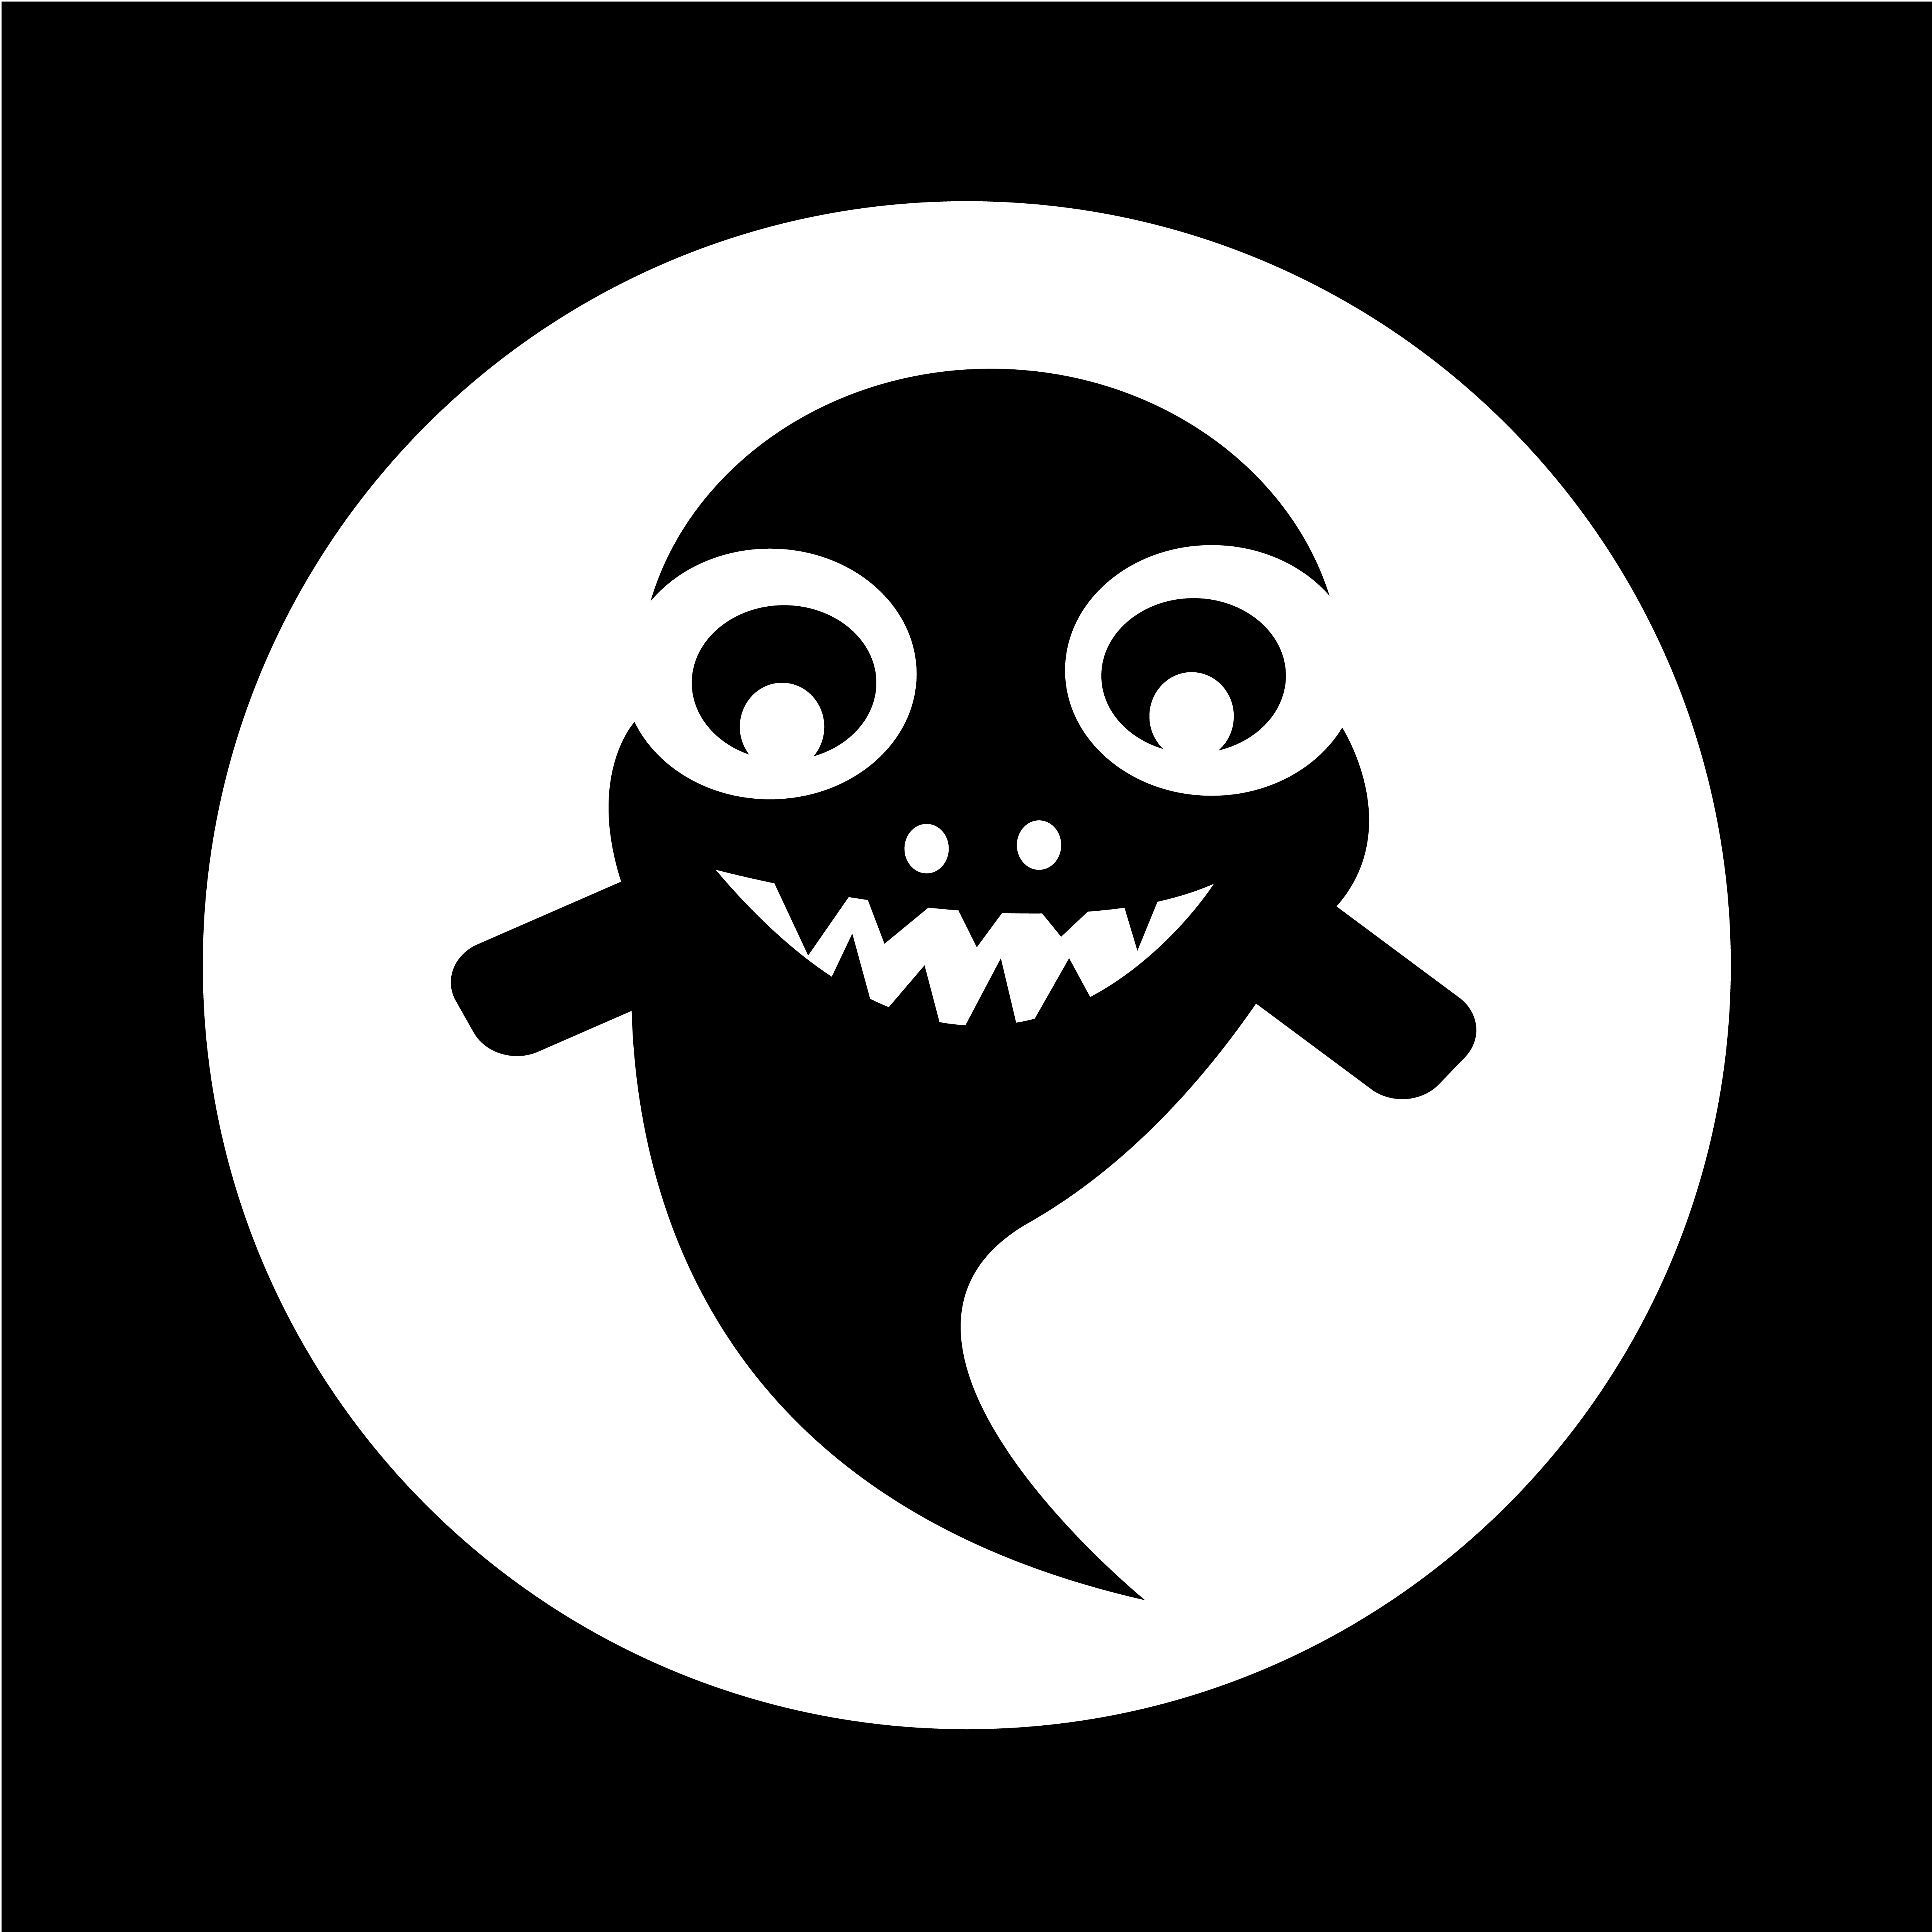 ghost Halloween icon - Download Free Vectors, Clipart ...